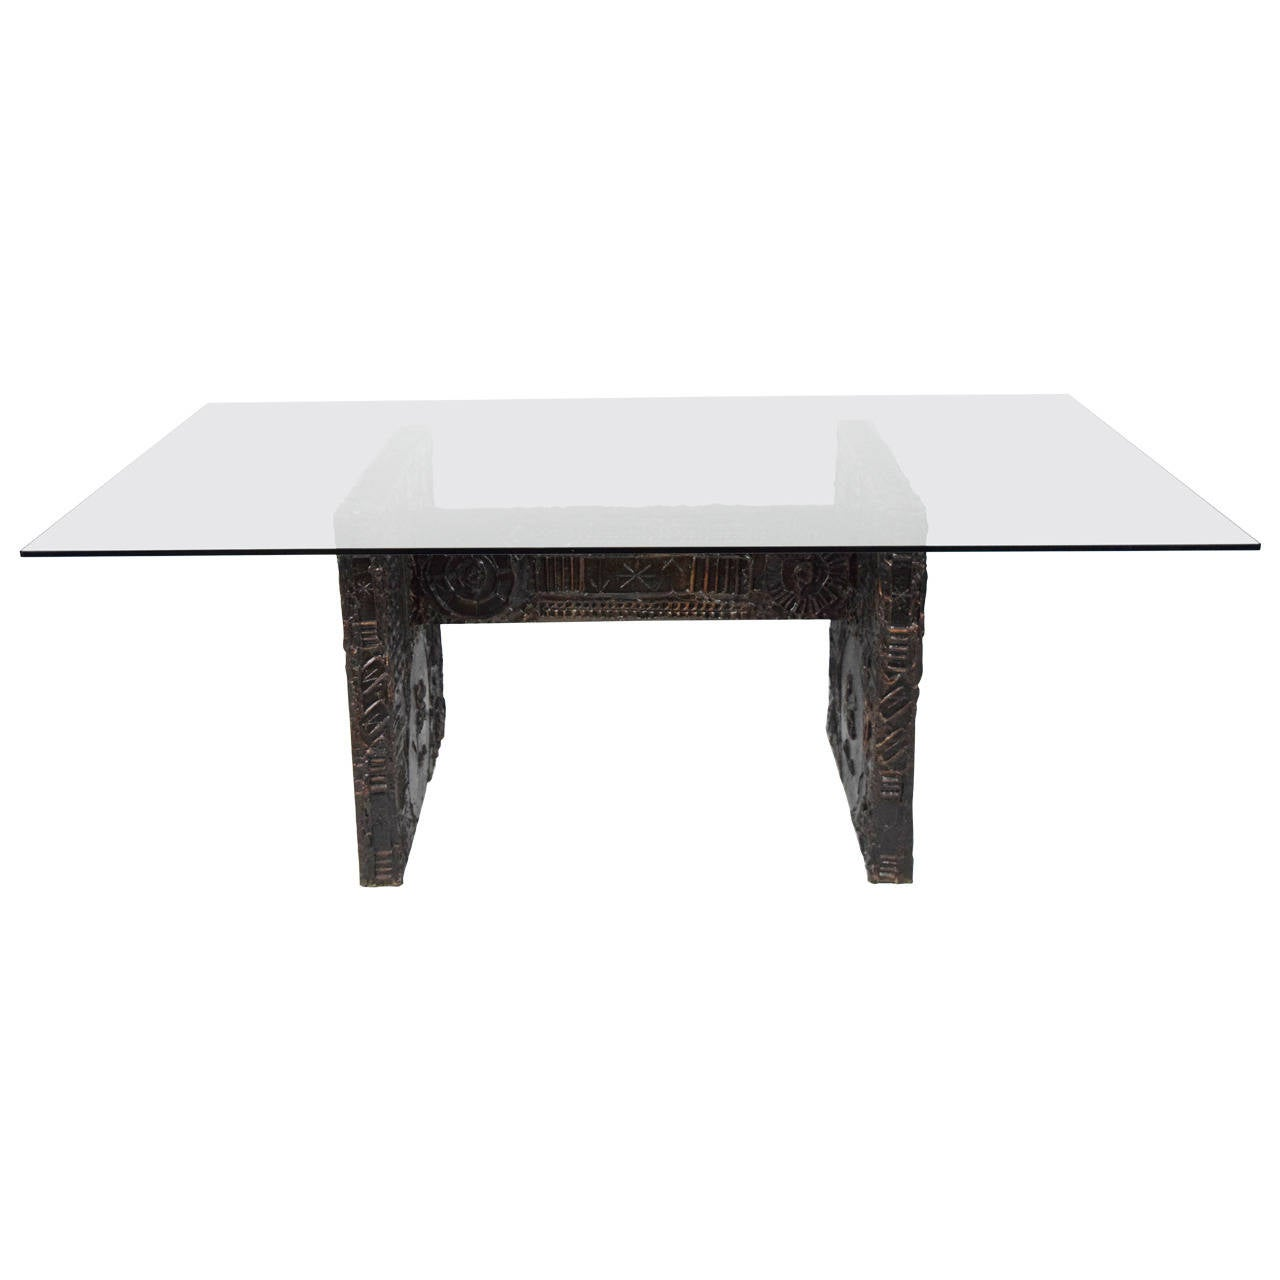 Adrian pearsall brutalist dining table in the style of paul evans adrian pearsall brutalist dining table in the style of paul evans 1 geotapseo Choice Image